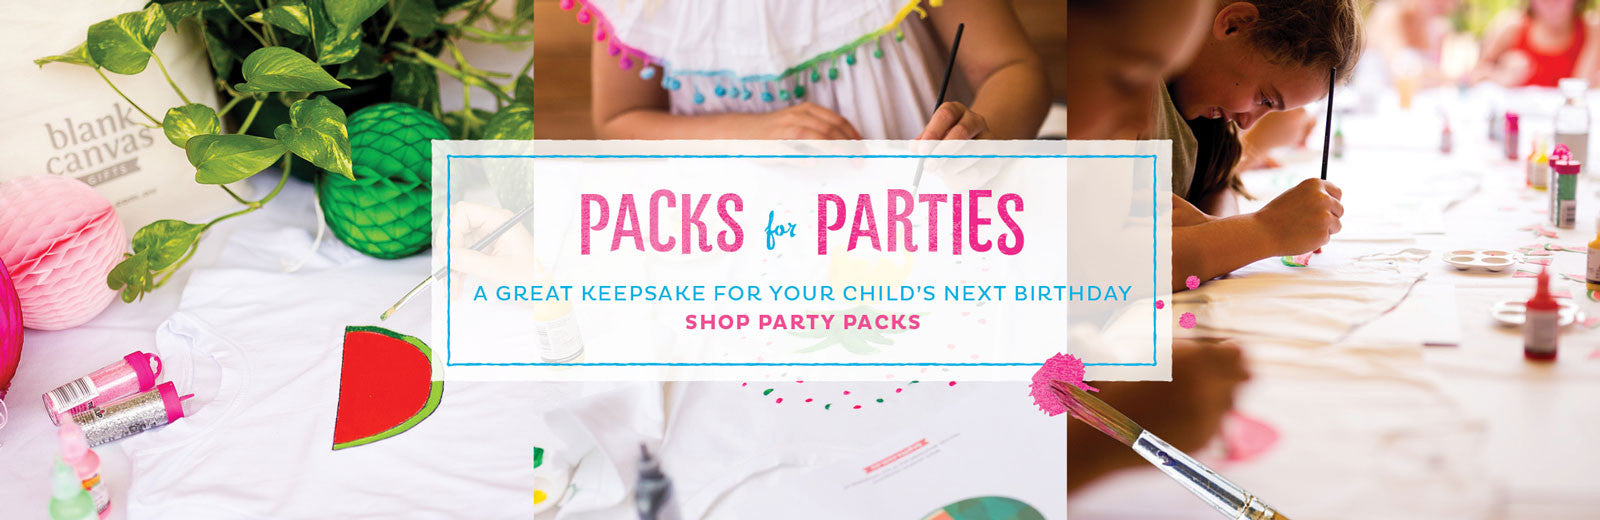 Blank Canvas Party Packs